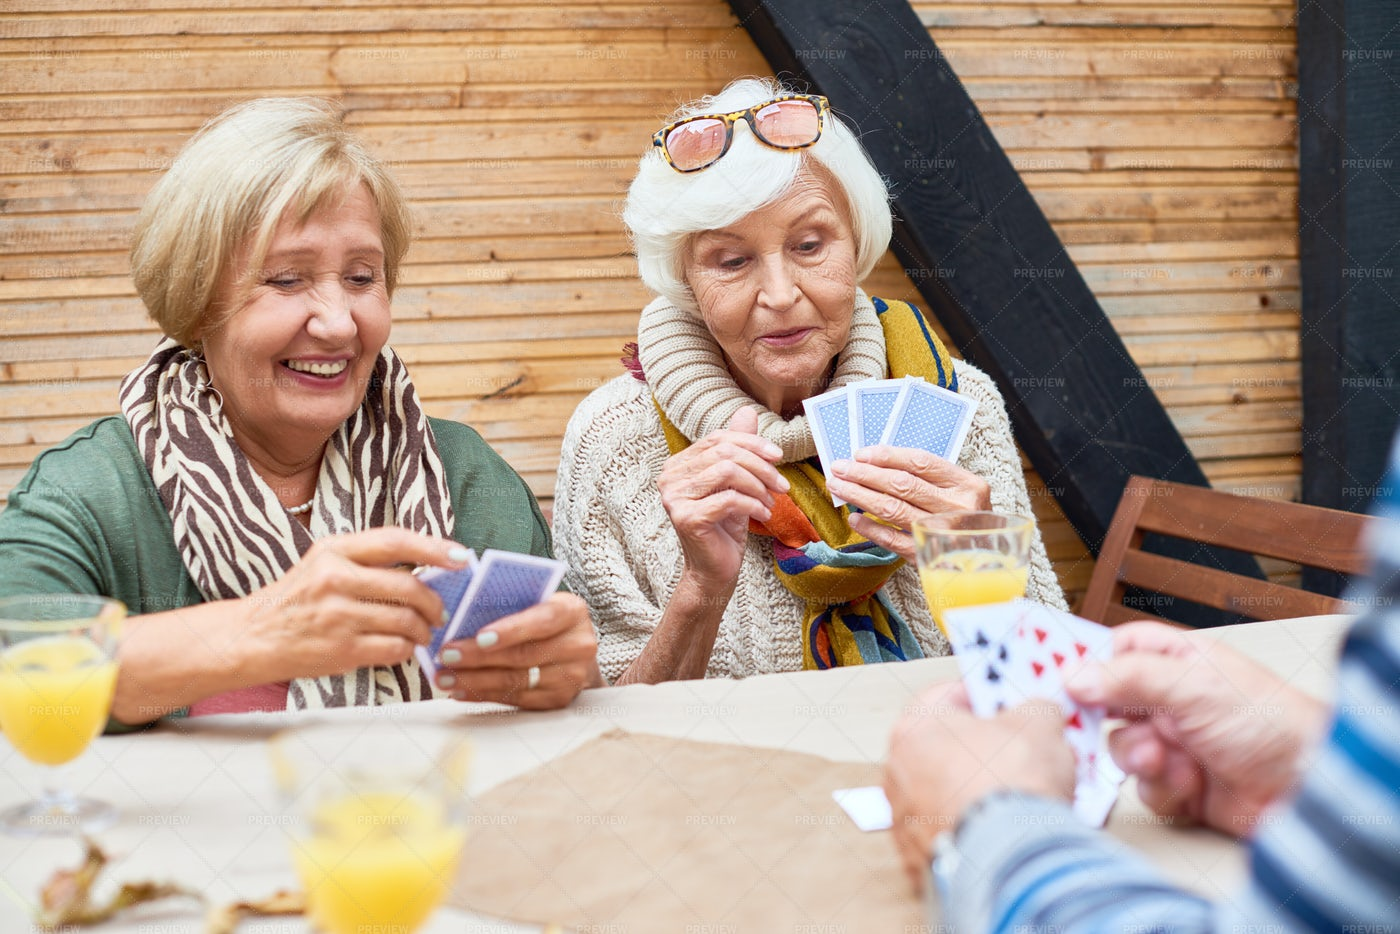 Wrapped Up In Playing Poker: Stock Photos